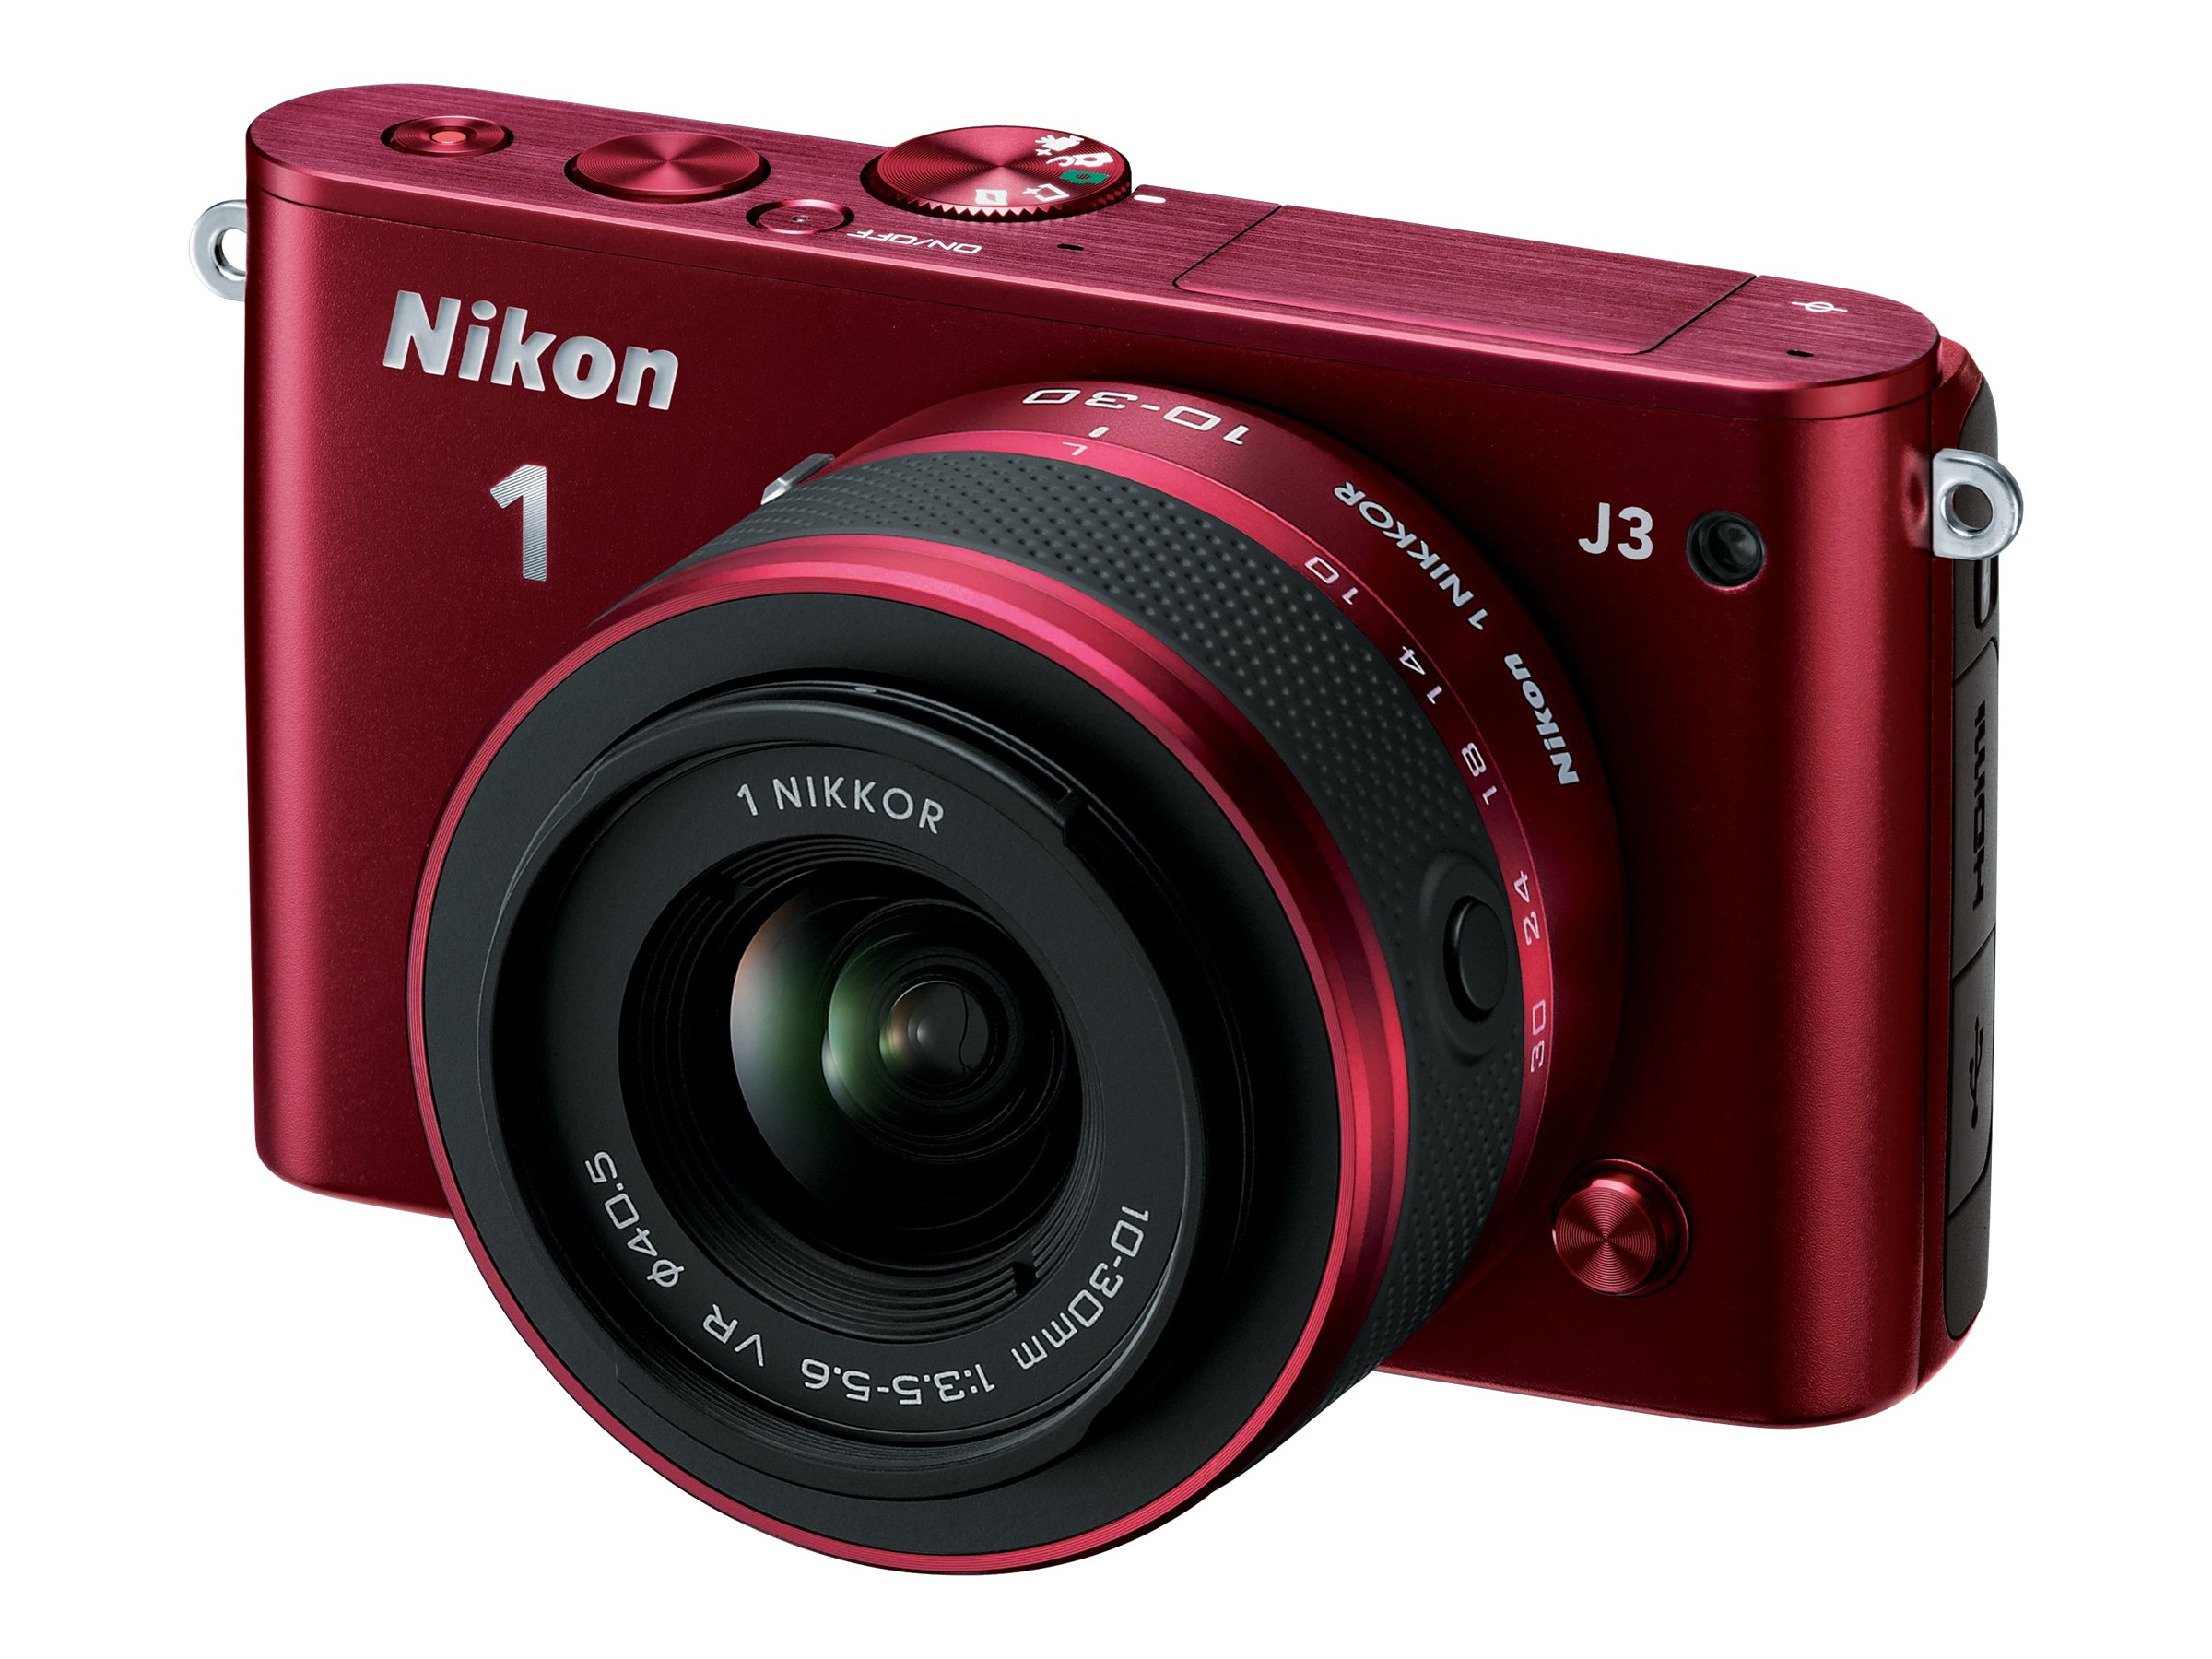 Nikon J3 Interchangable Lens Digital Camera, 14.2MP, Red with 10-30mm Lens, 27639